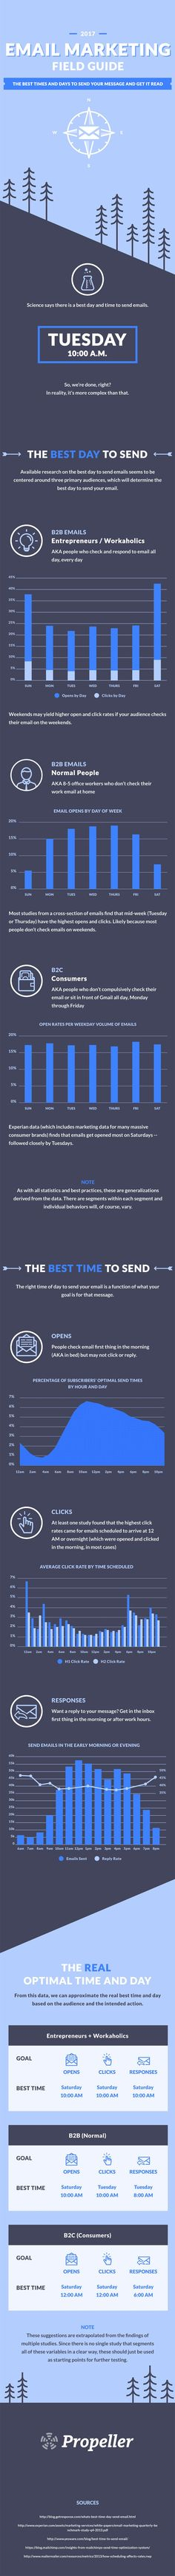 Here are some tips to help you boost your email marketing efforts.